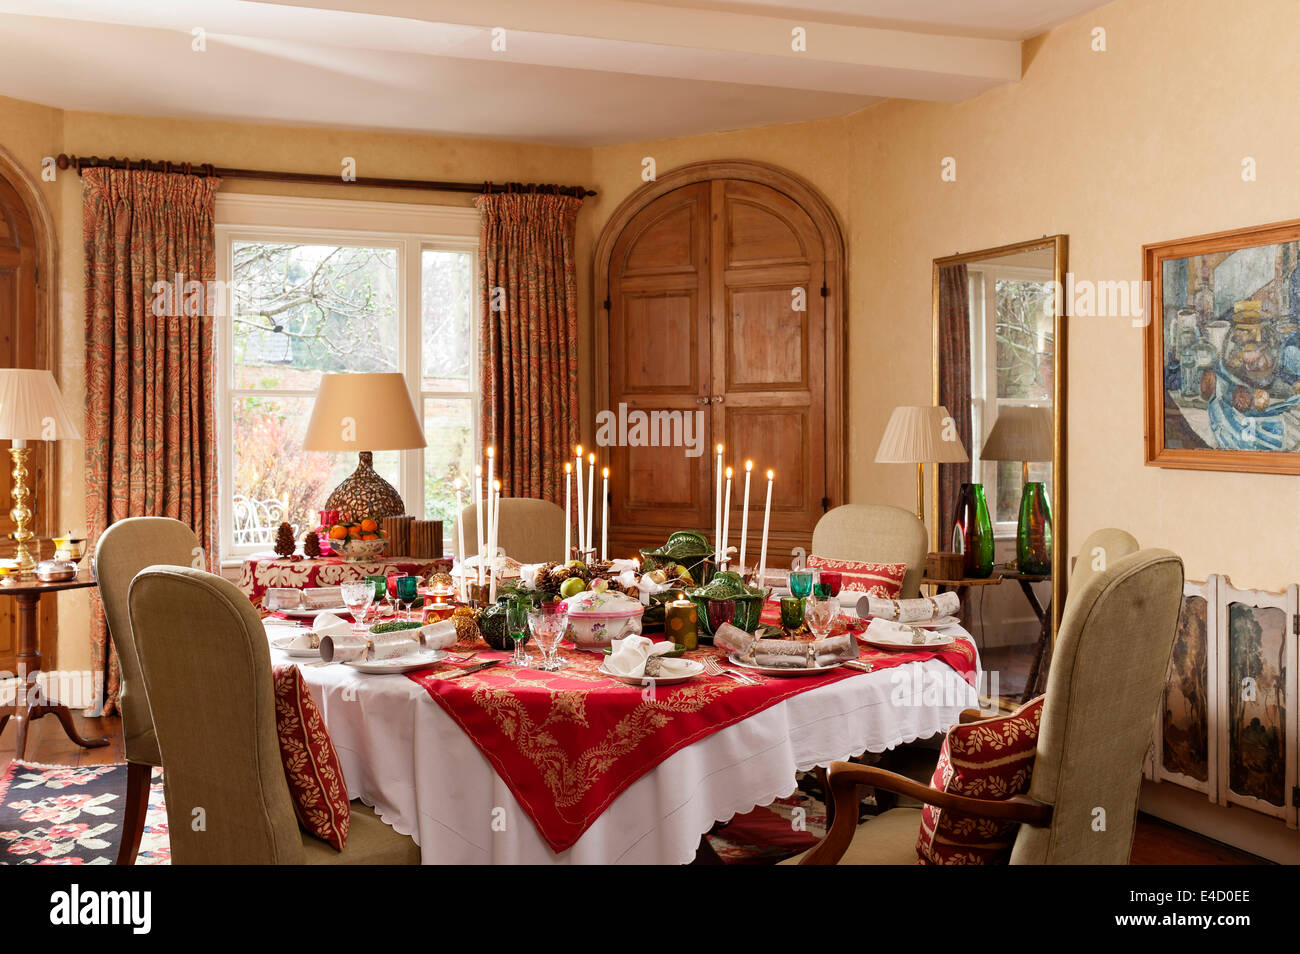 Dining room with table laid for christmas dinner. The tableware is a mix of Luneville Old Strasbourg pattern china - Stock Image